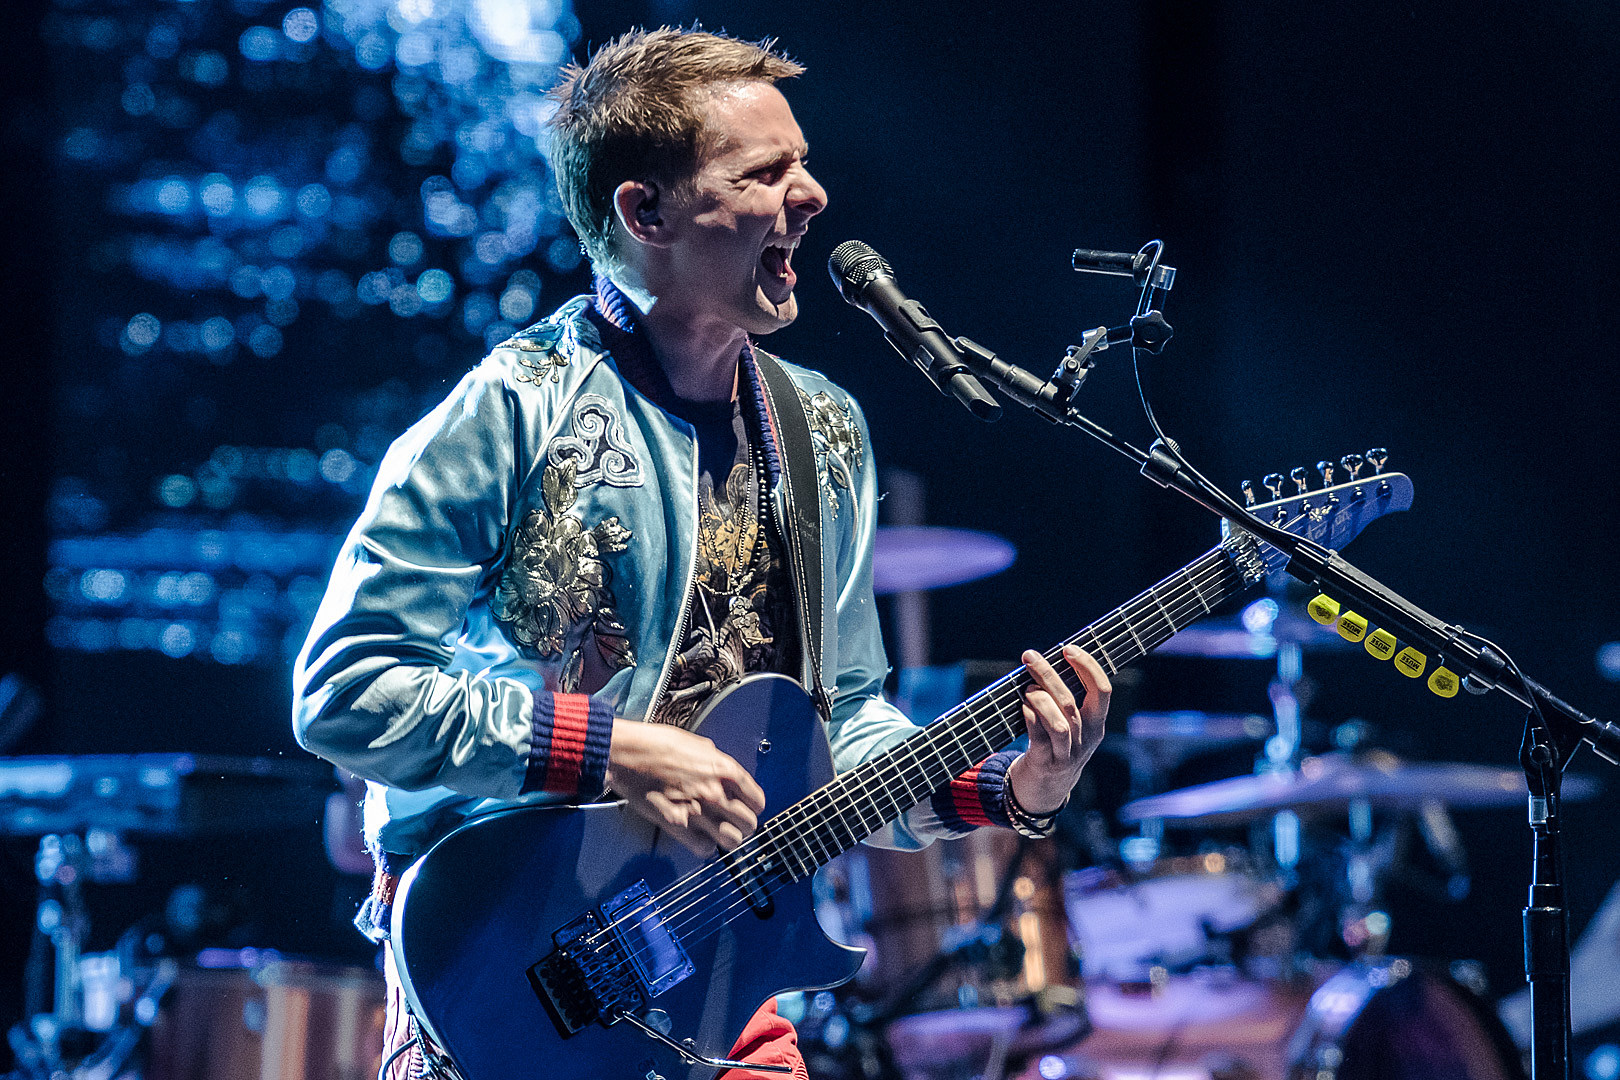 Muse to Screen 'Drones World Tour' Concert Film in July